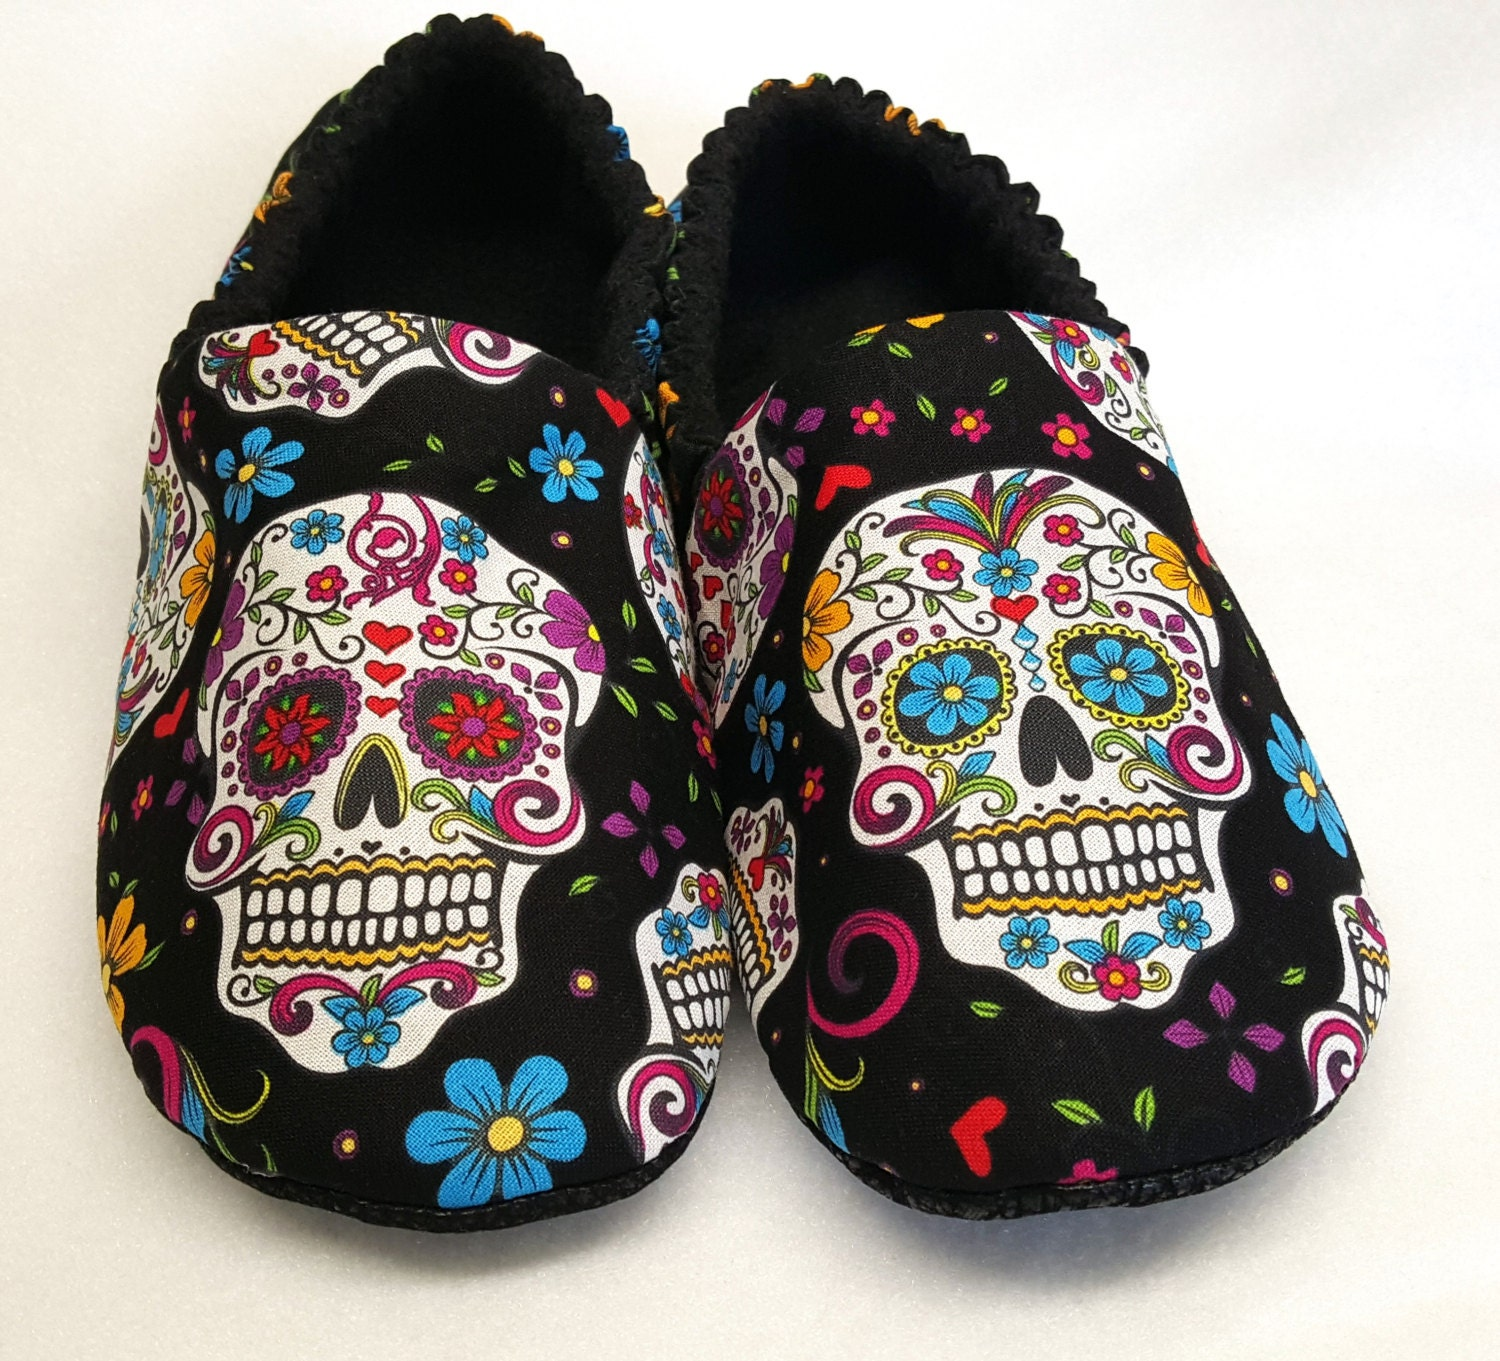 ADULT Sugar Skull Slippers - My Sugar Skulls